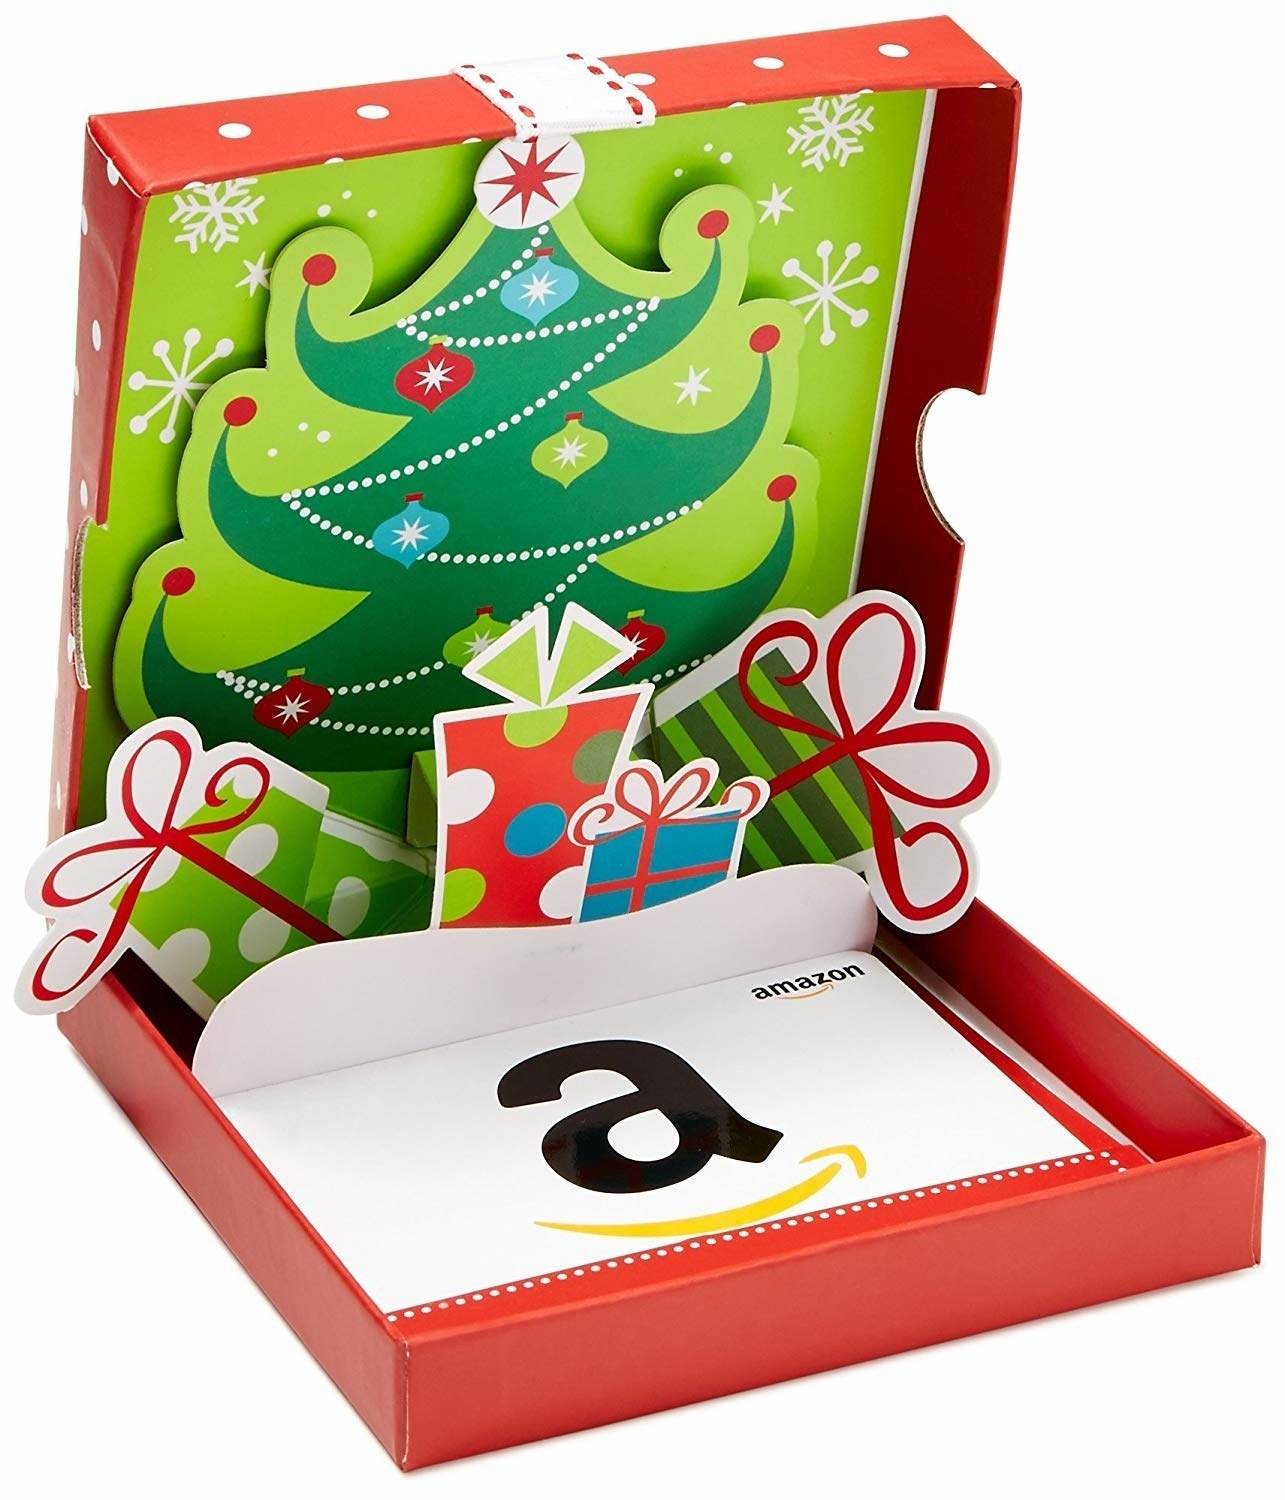 the amazon gift card in a holiday box